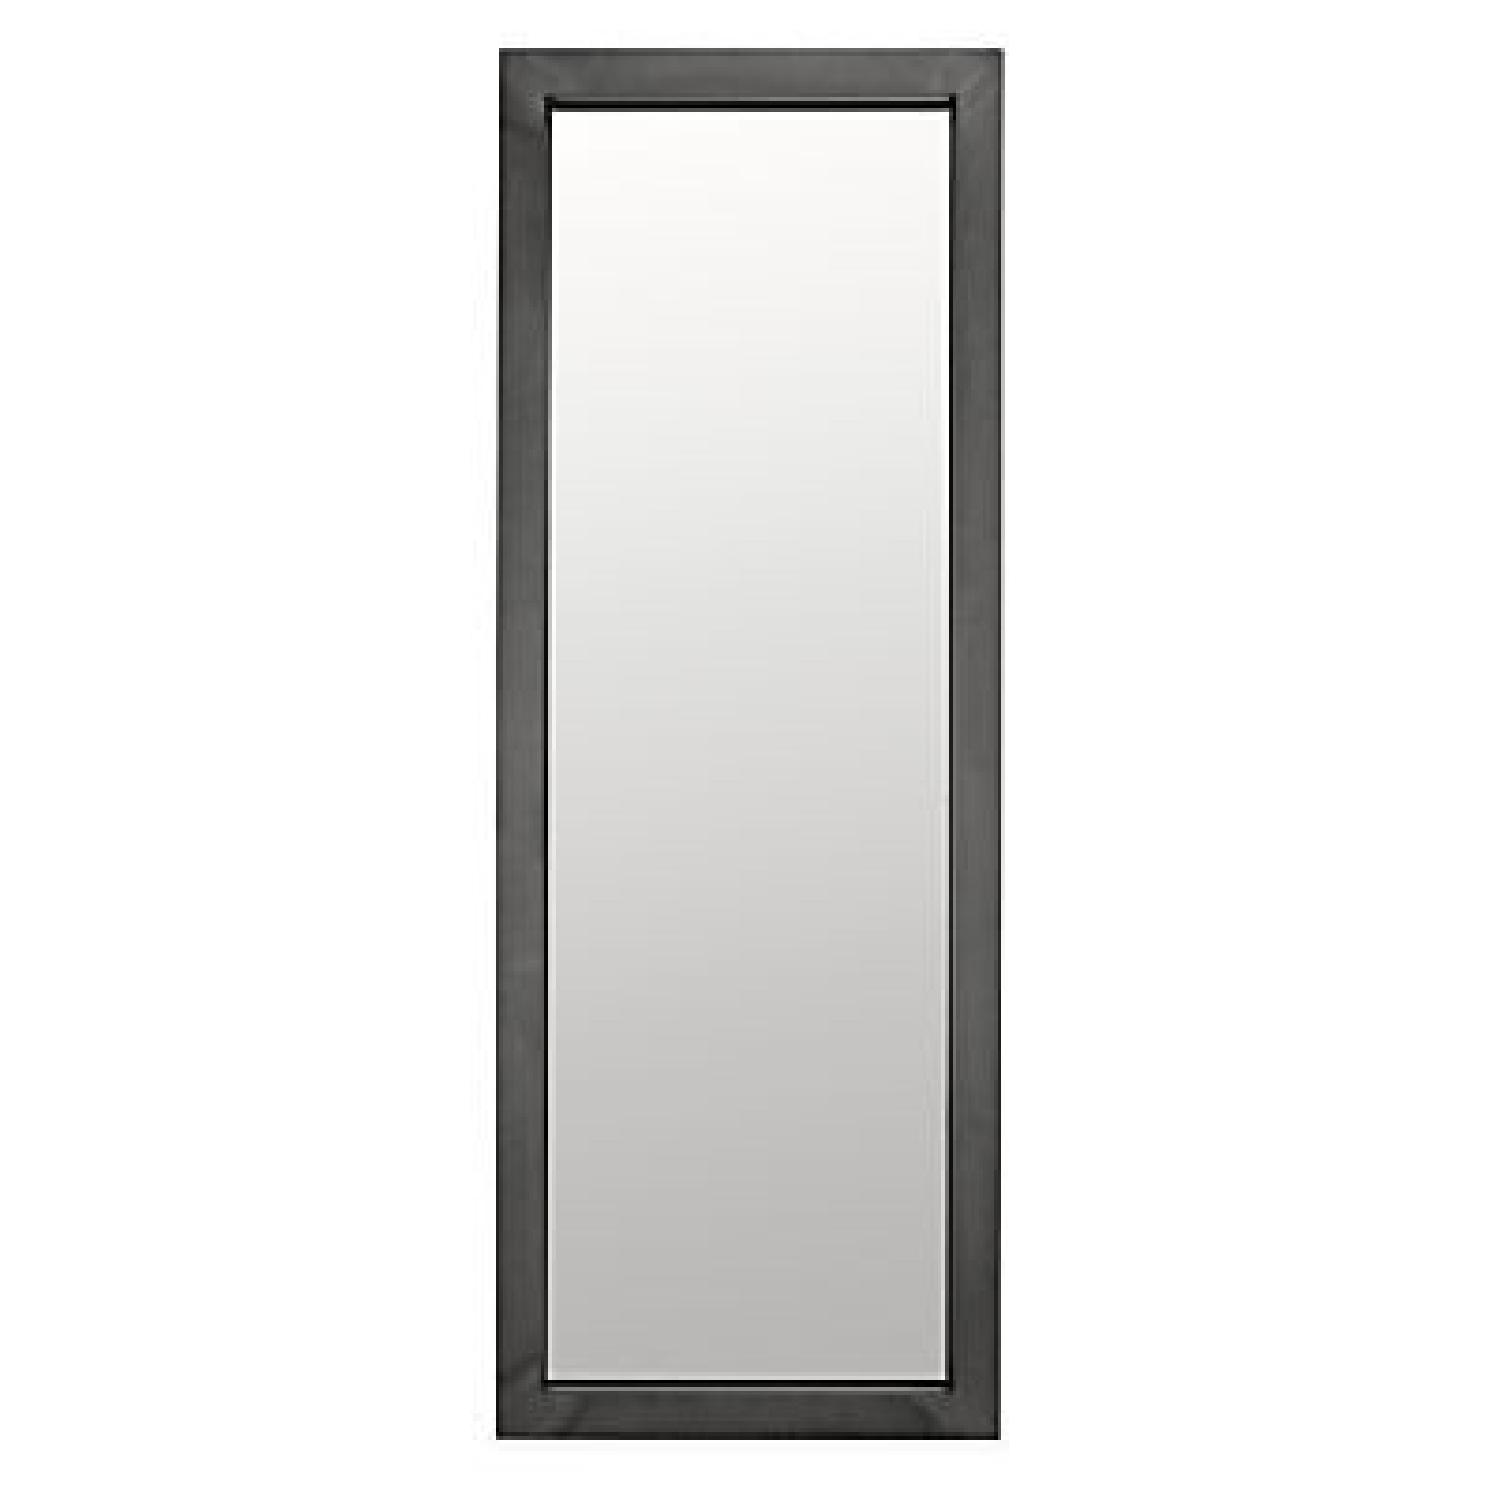 Room & Board Industry Leaning Mirror in Natural Steel - image-0